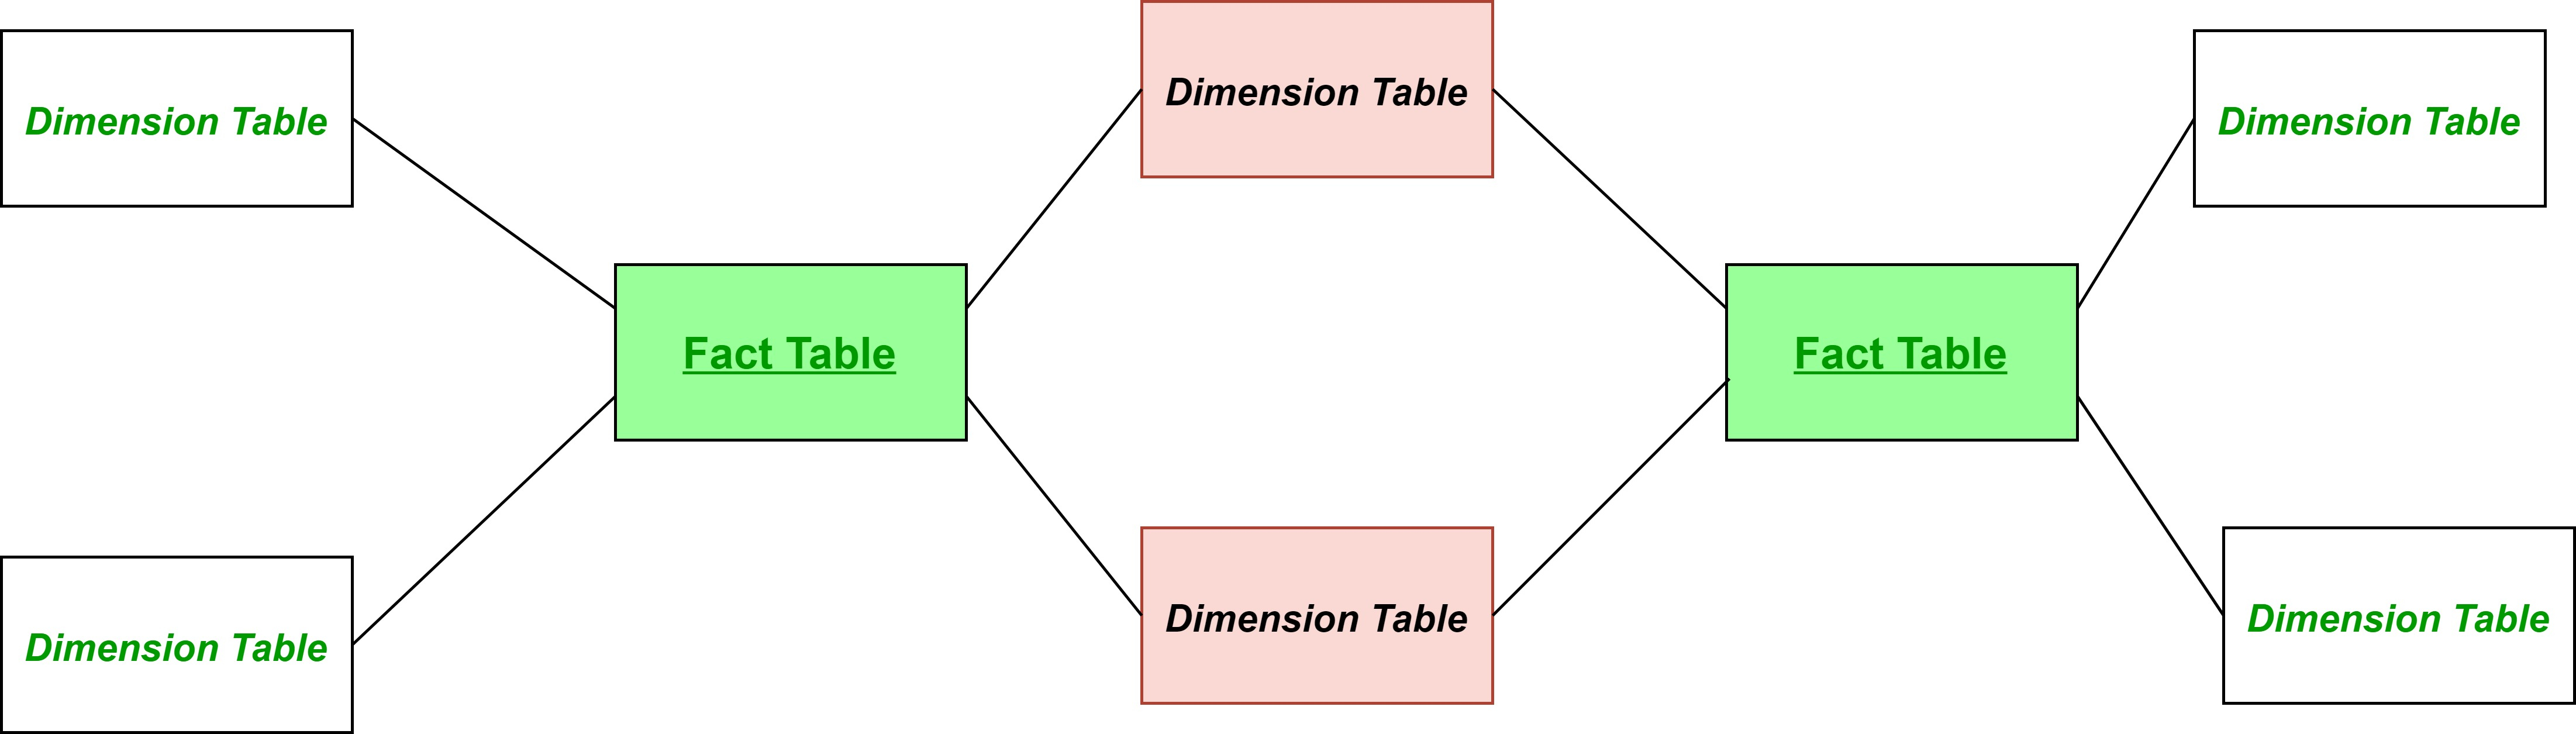 Fact Constellation In Data Warehouse Modelling - Geeksforgeeks for Er Diagram Ques10